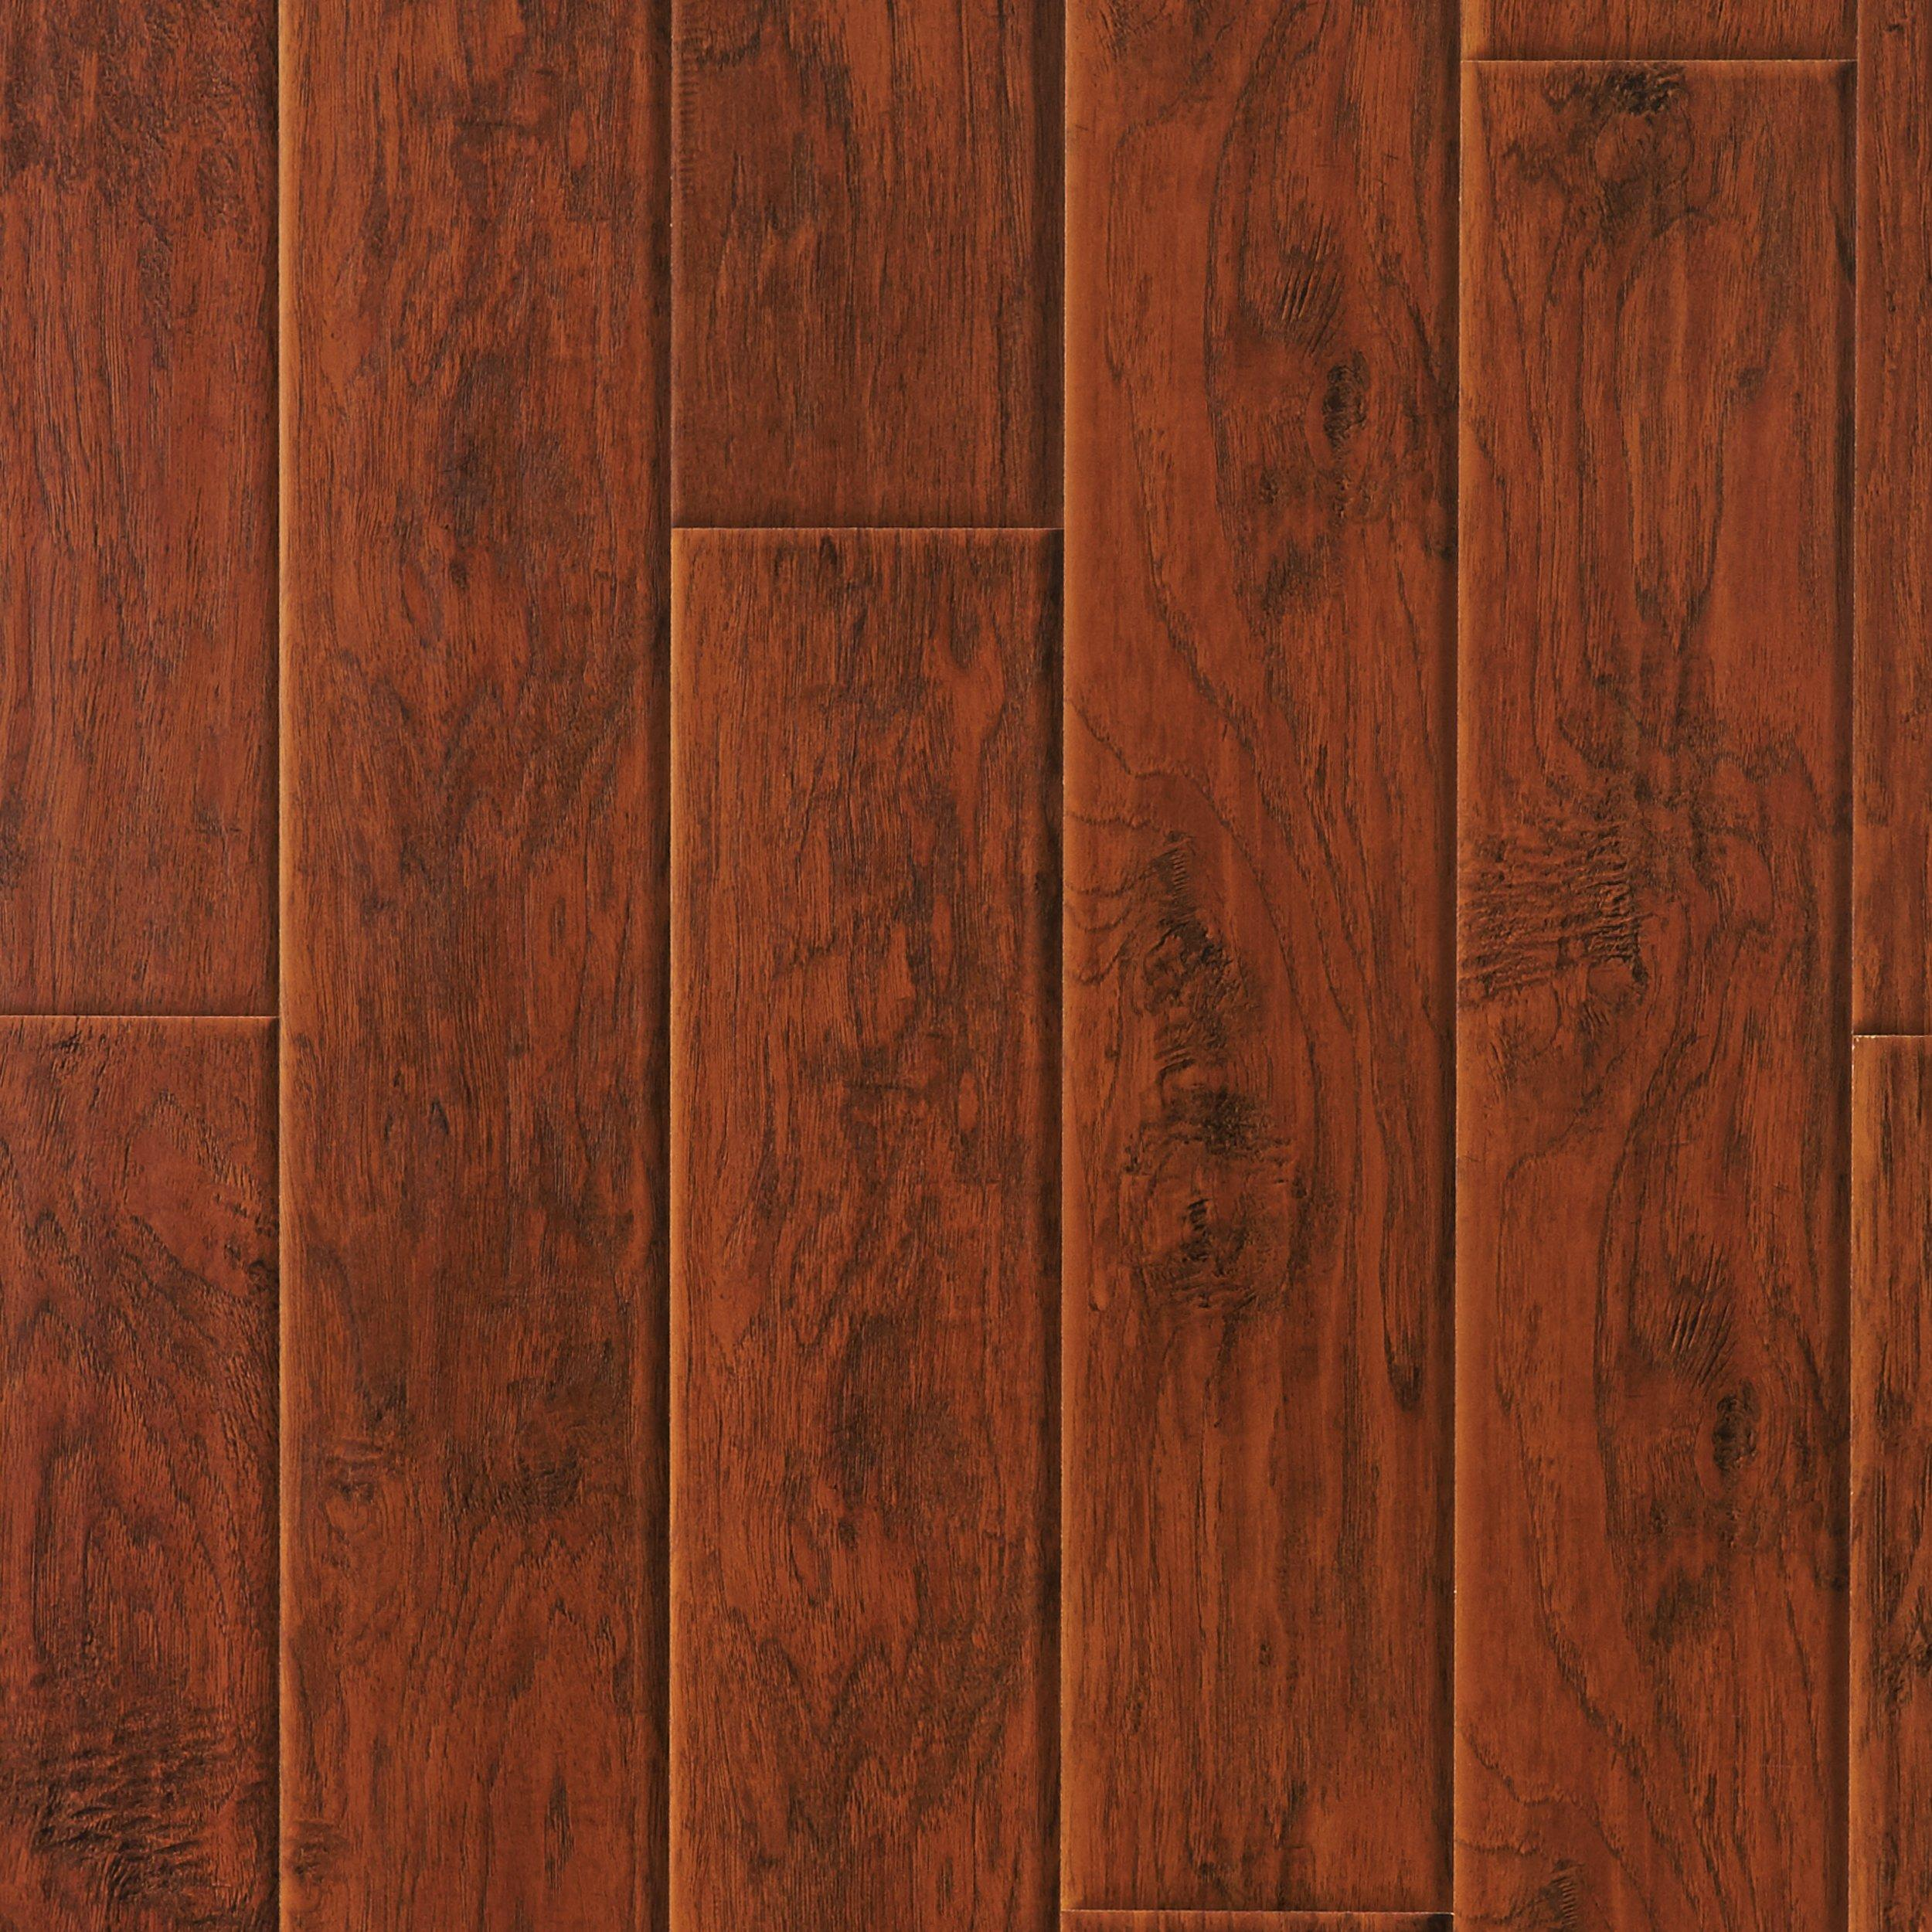 Hand Scraped Flooring Laminate Artisan Floors Delano Ii